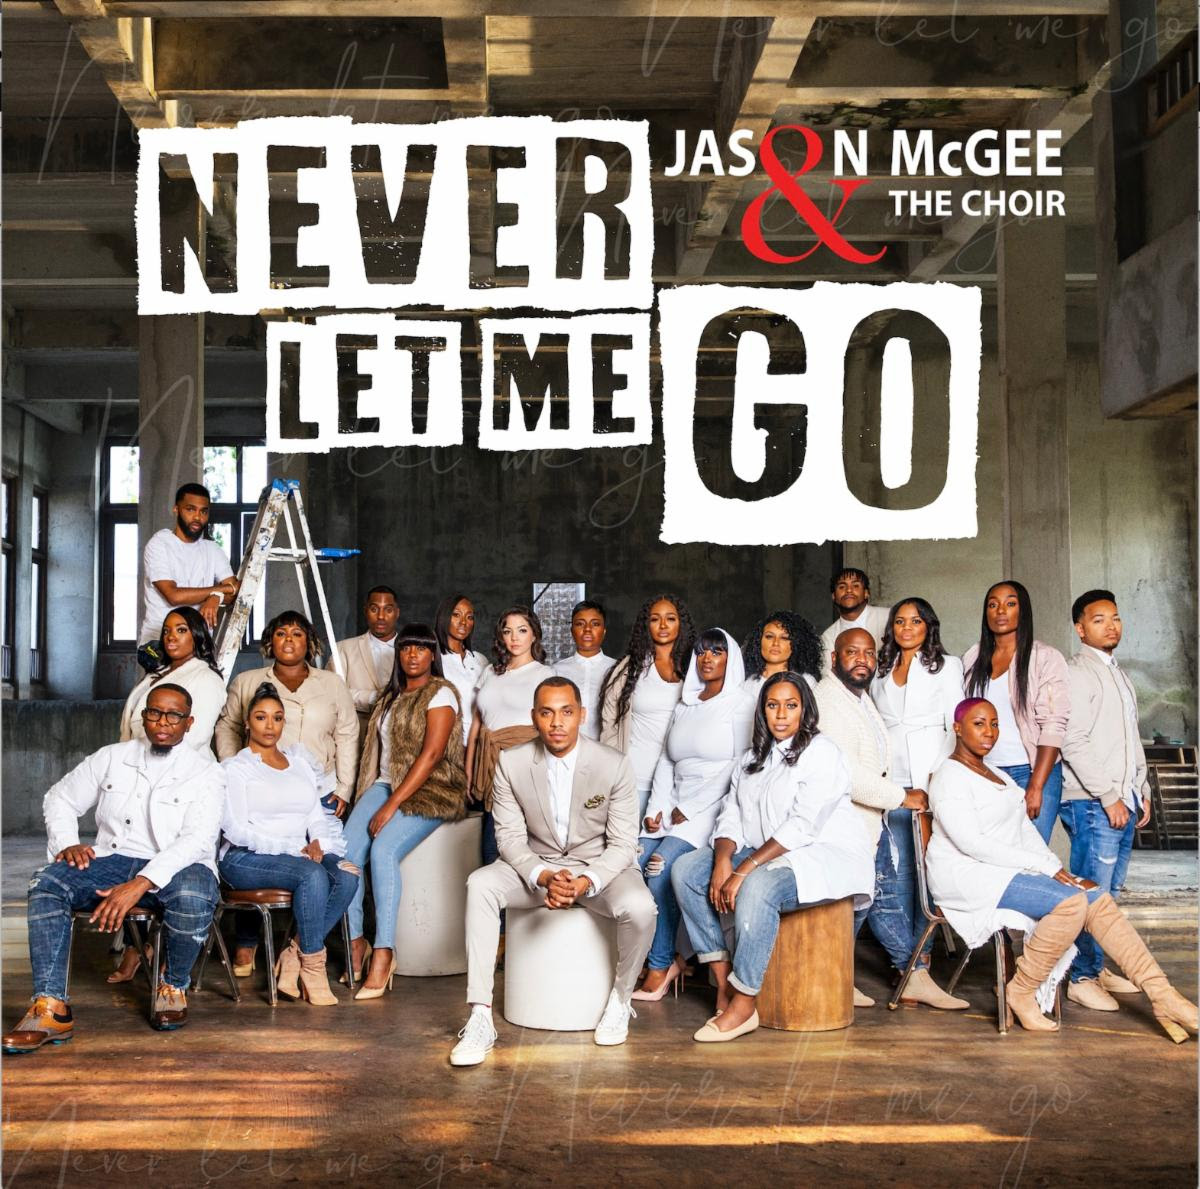 Jason McGee & The Choir Readies New Single 'Never Let Me Go' Available Digitally Now